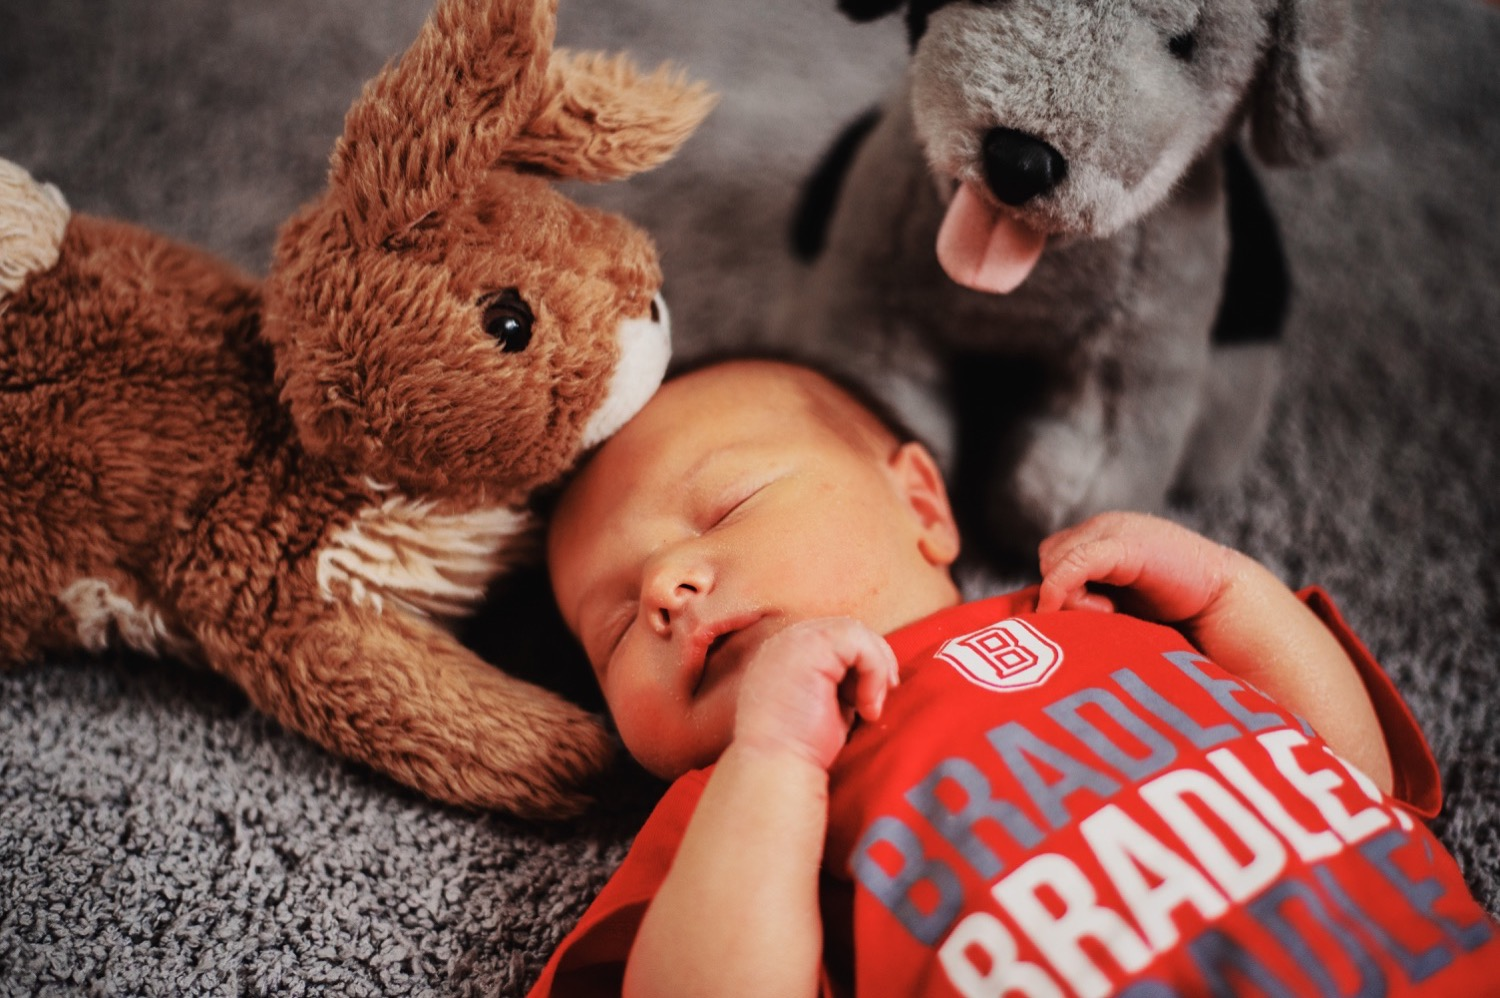 23_DanielWilliam-Newborn_0519_Chicagonewborn.jpg